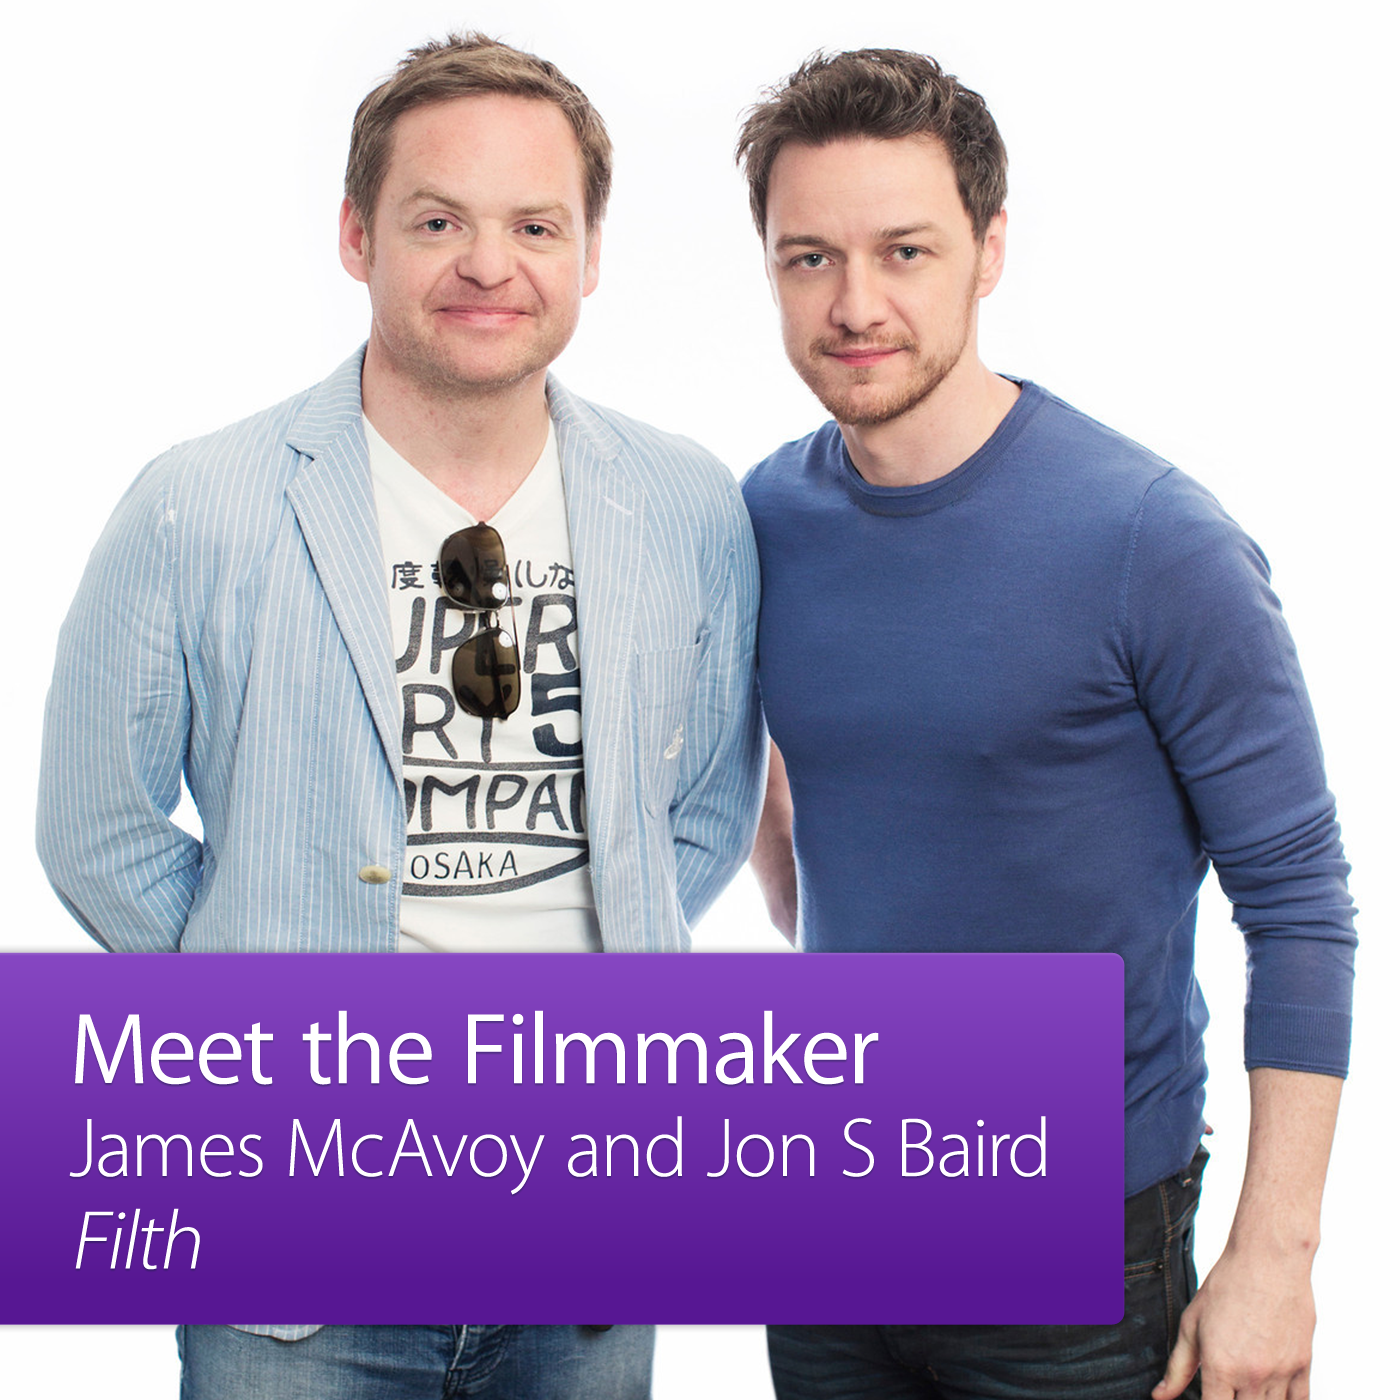 James McAvoy and Jon S Baird: Meet the Filmmaker